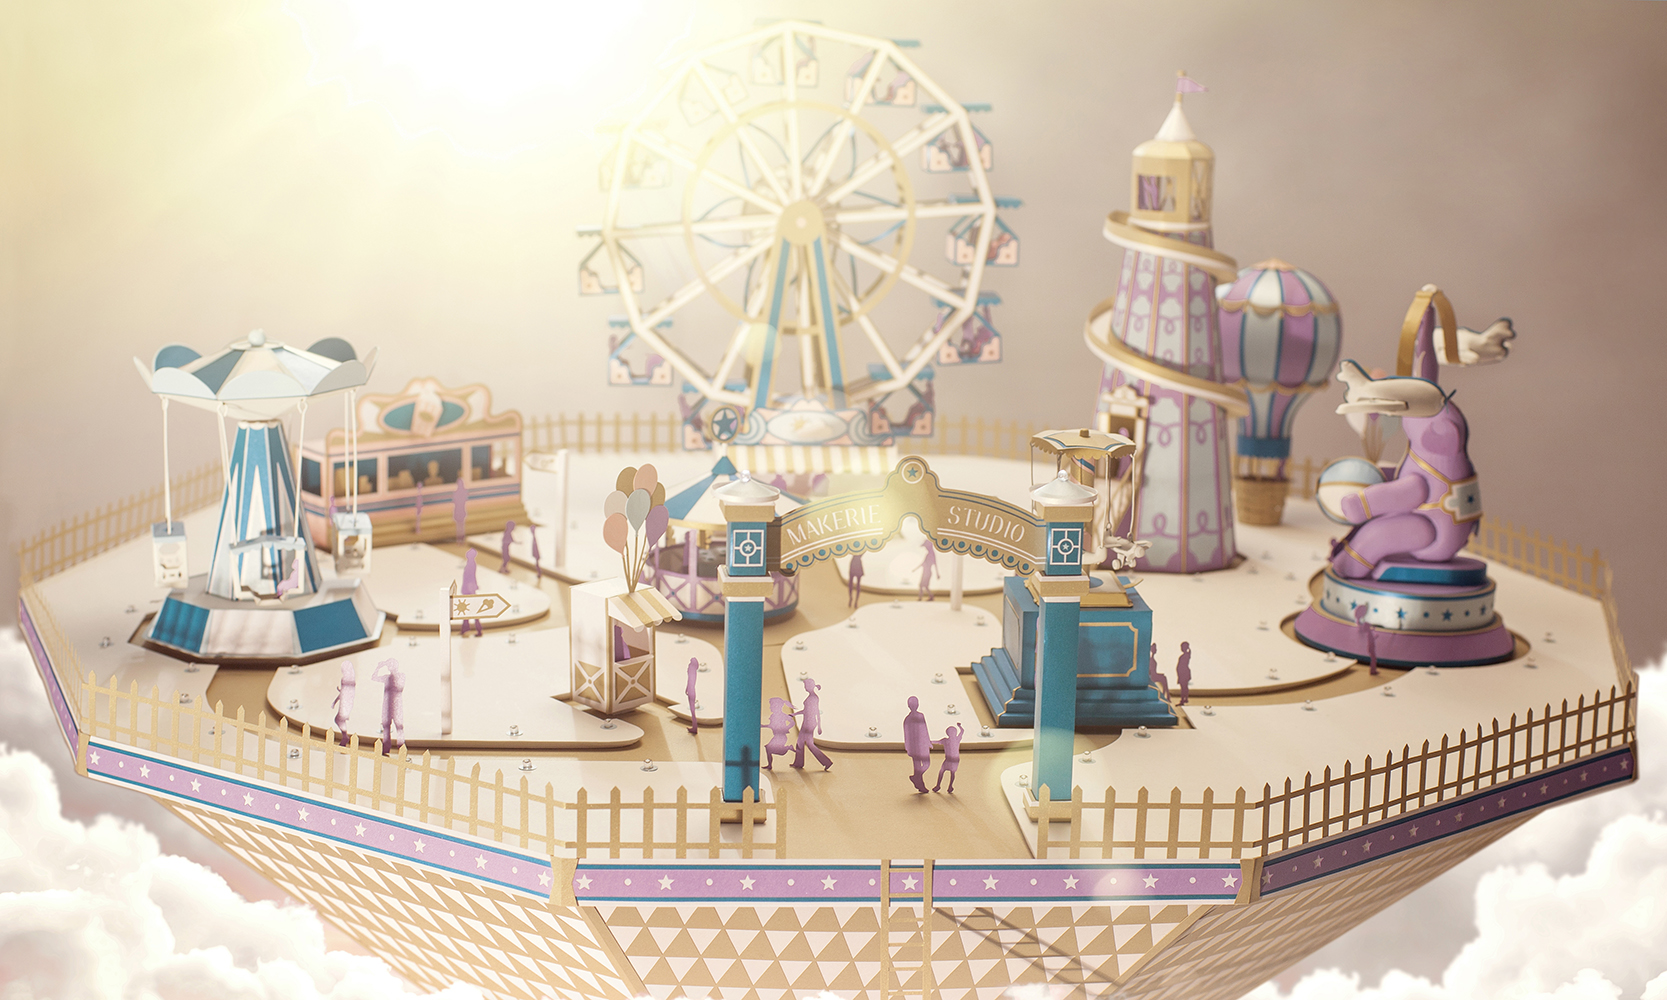 makerie-studio-fantastical-fairground-main